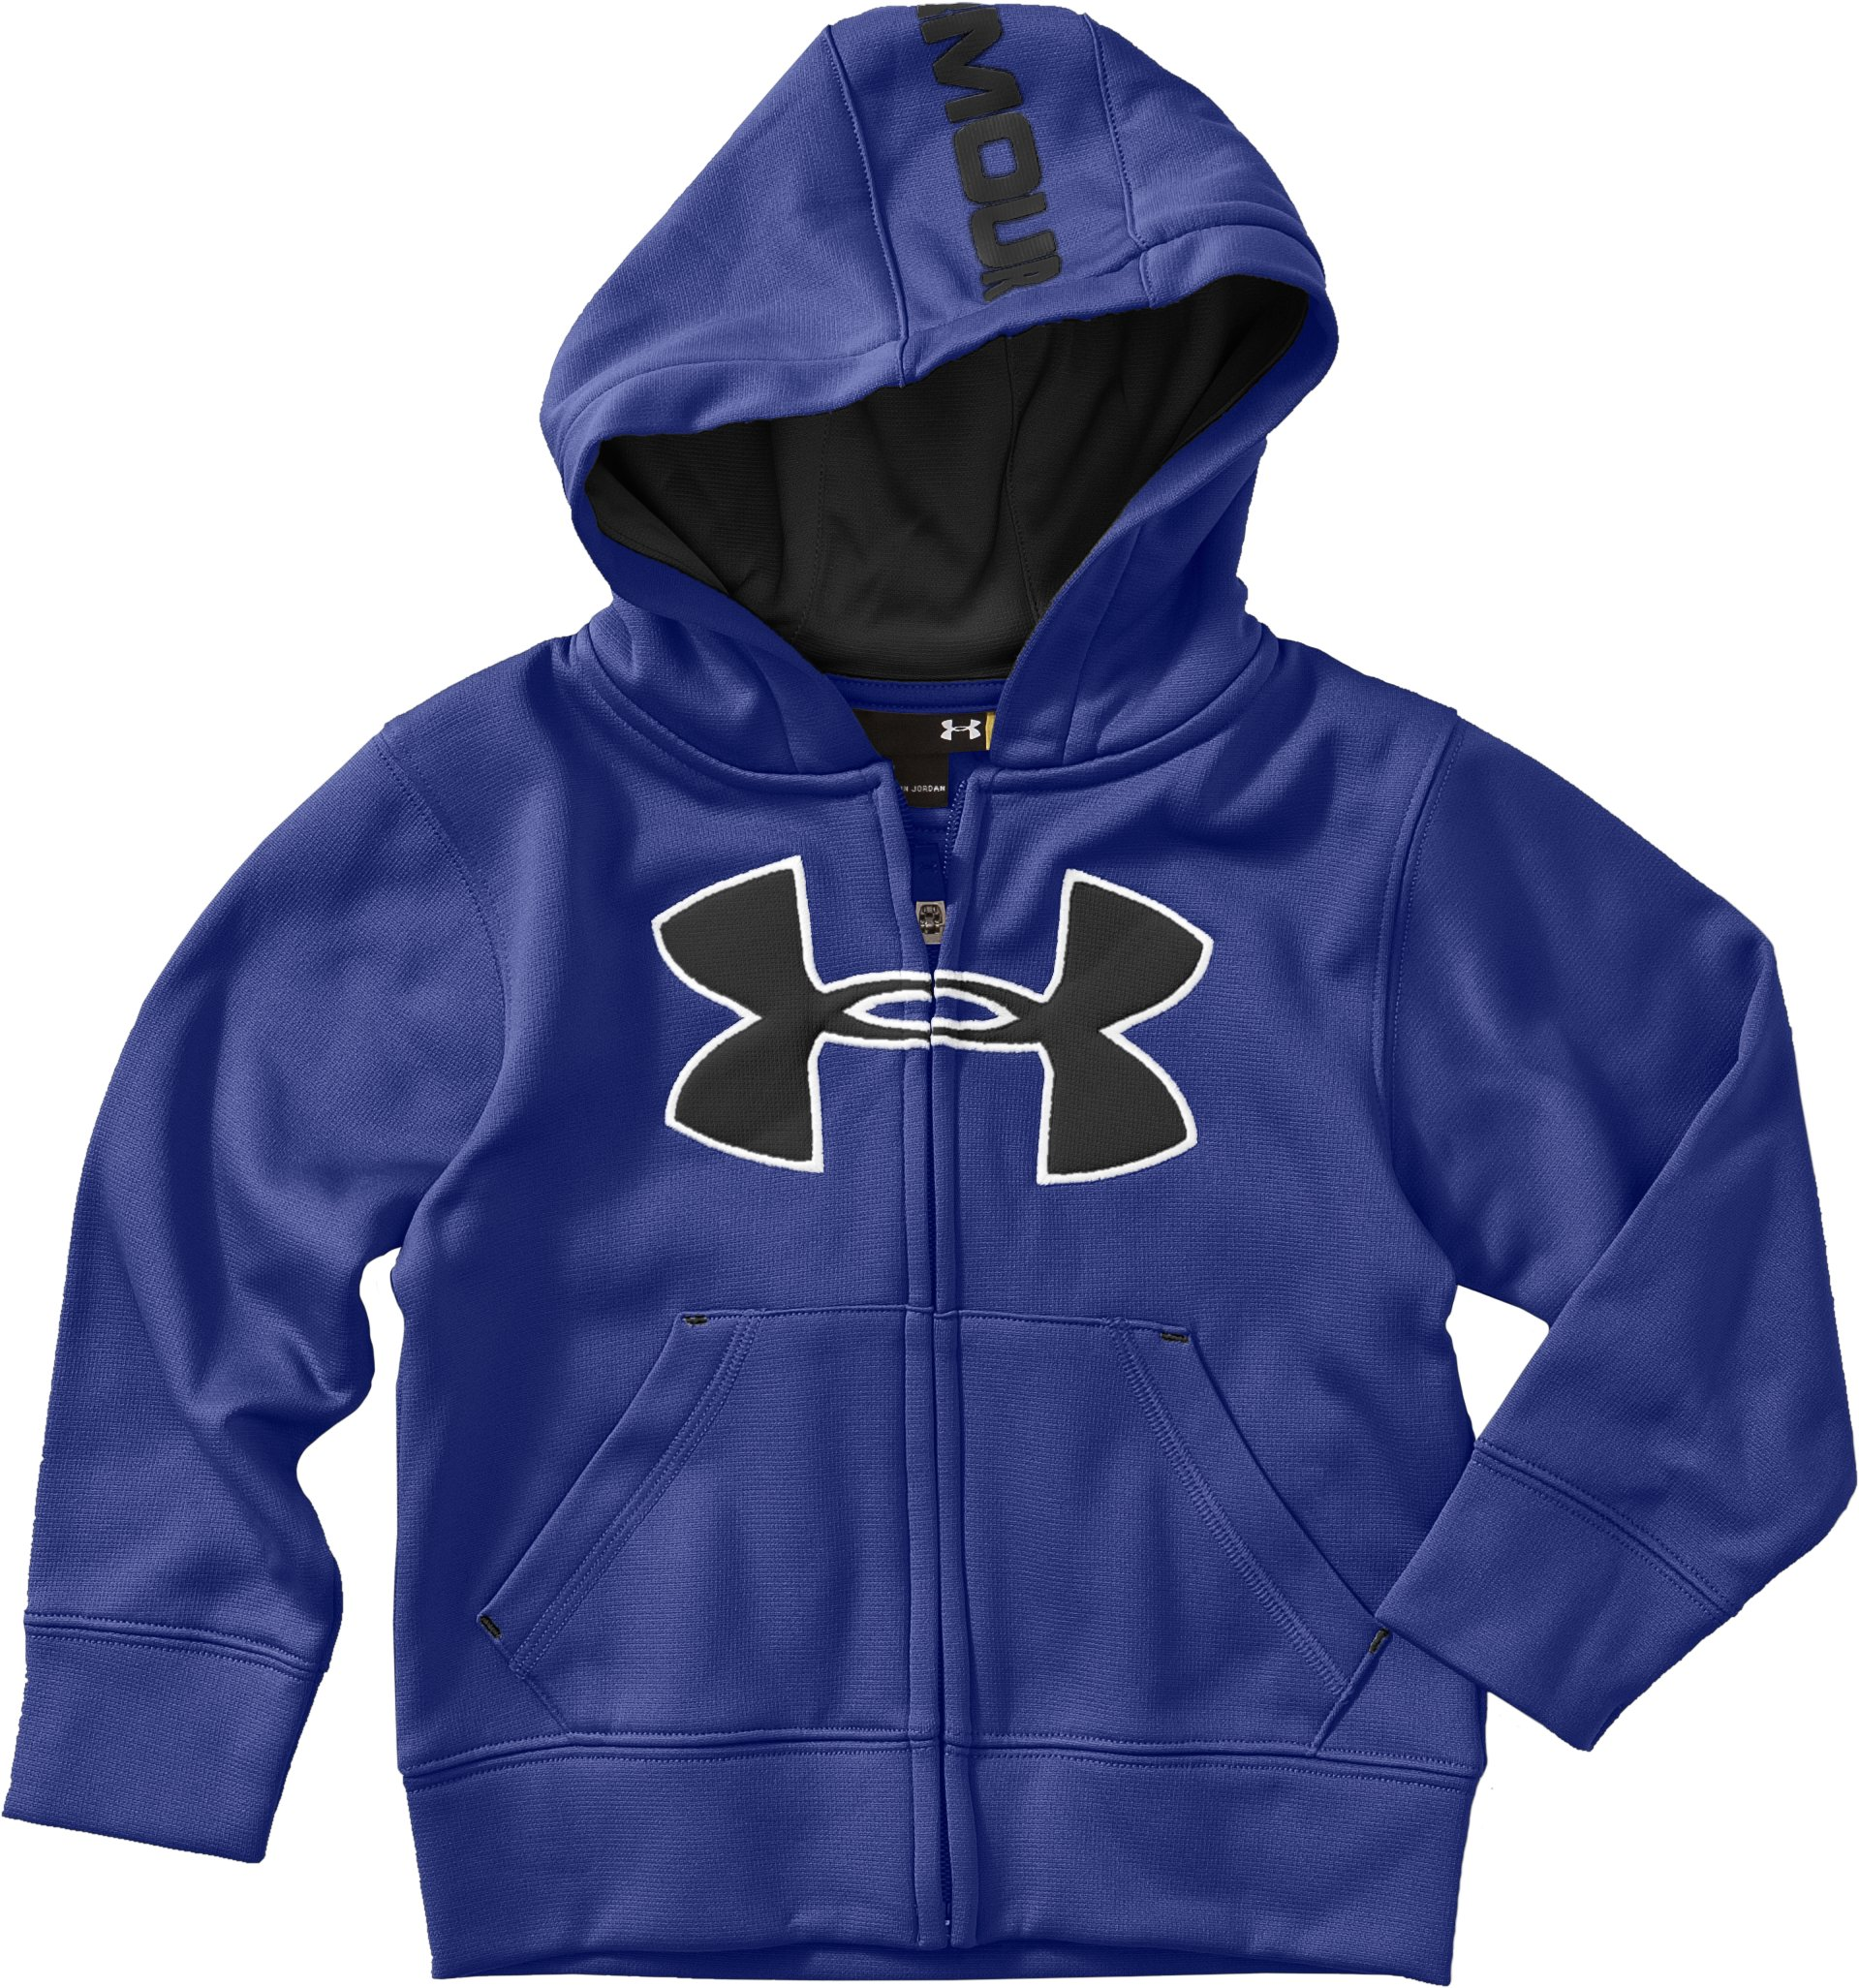 Boys' 4-7 Big Logo Fleece Hoodie, Royal